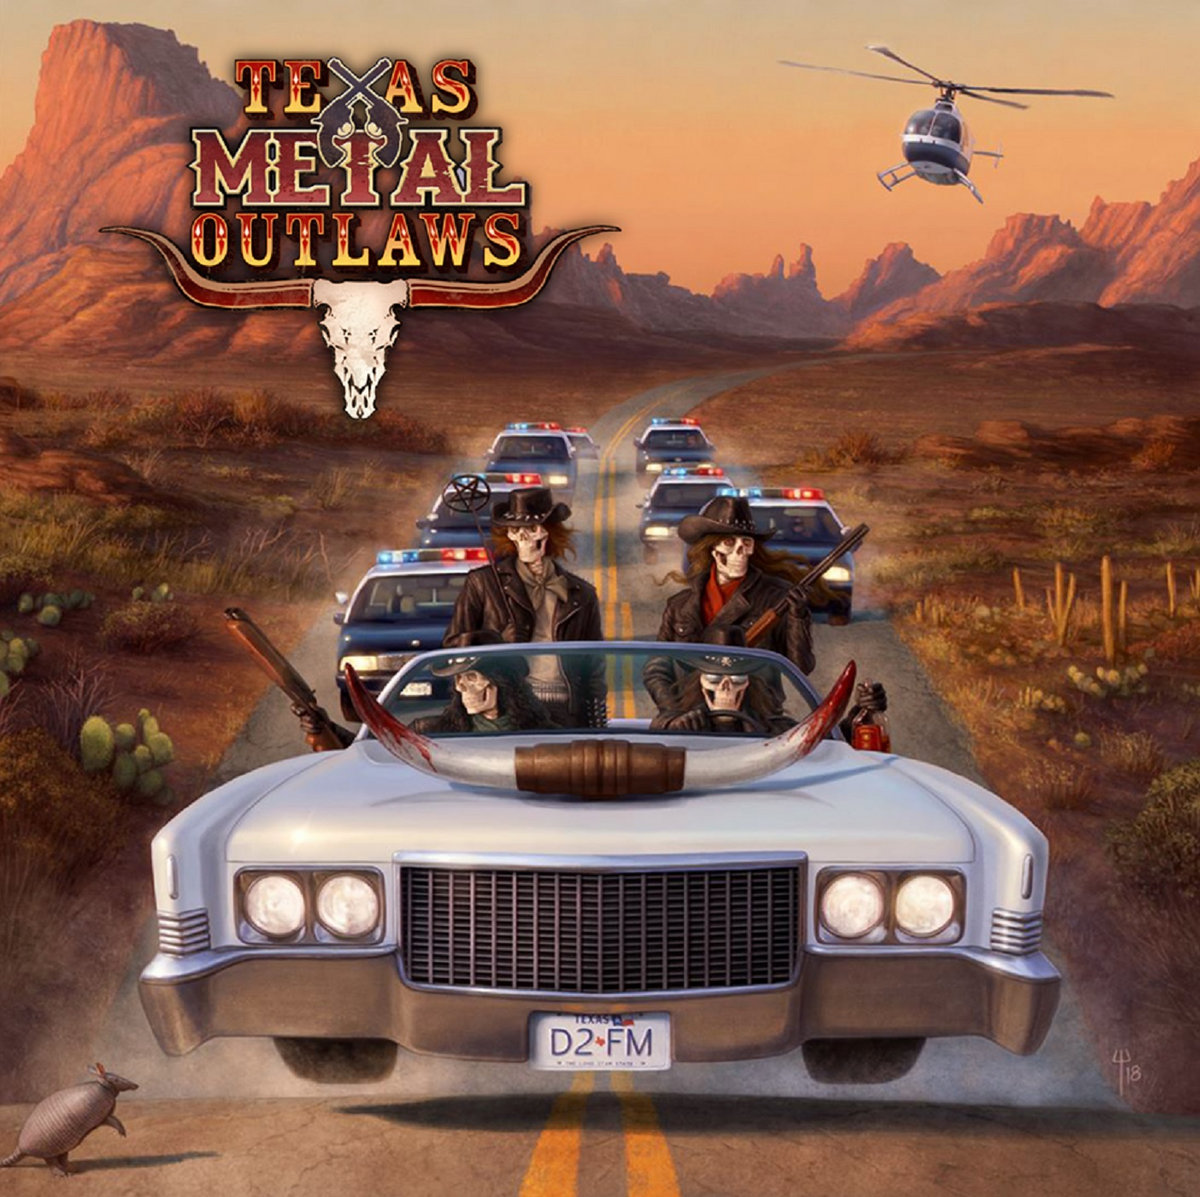 Art for Echoes of Memories by Texas Metal Outlaws